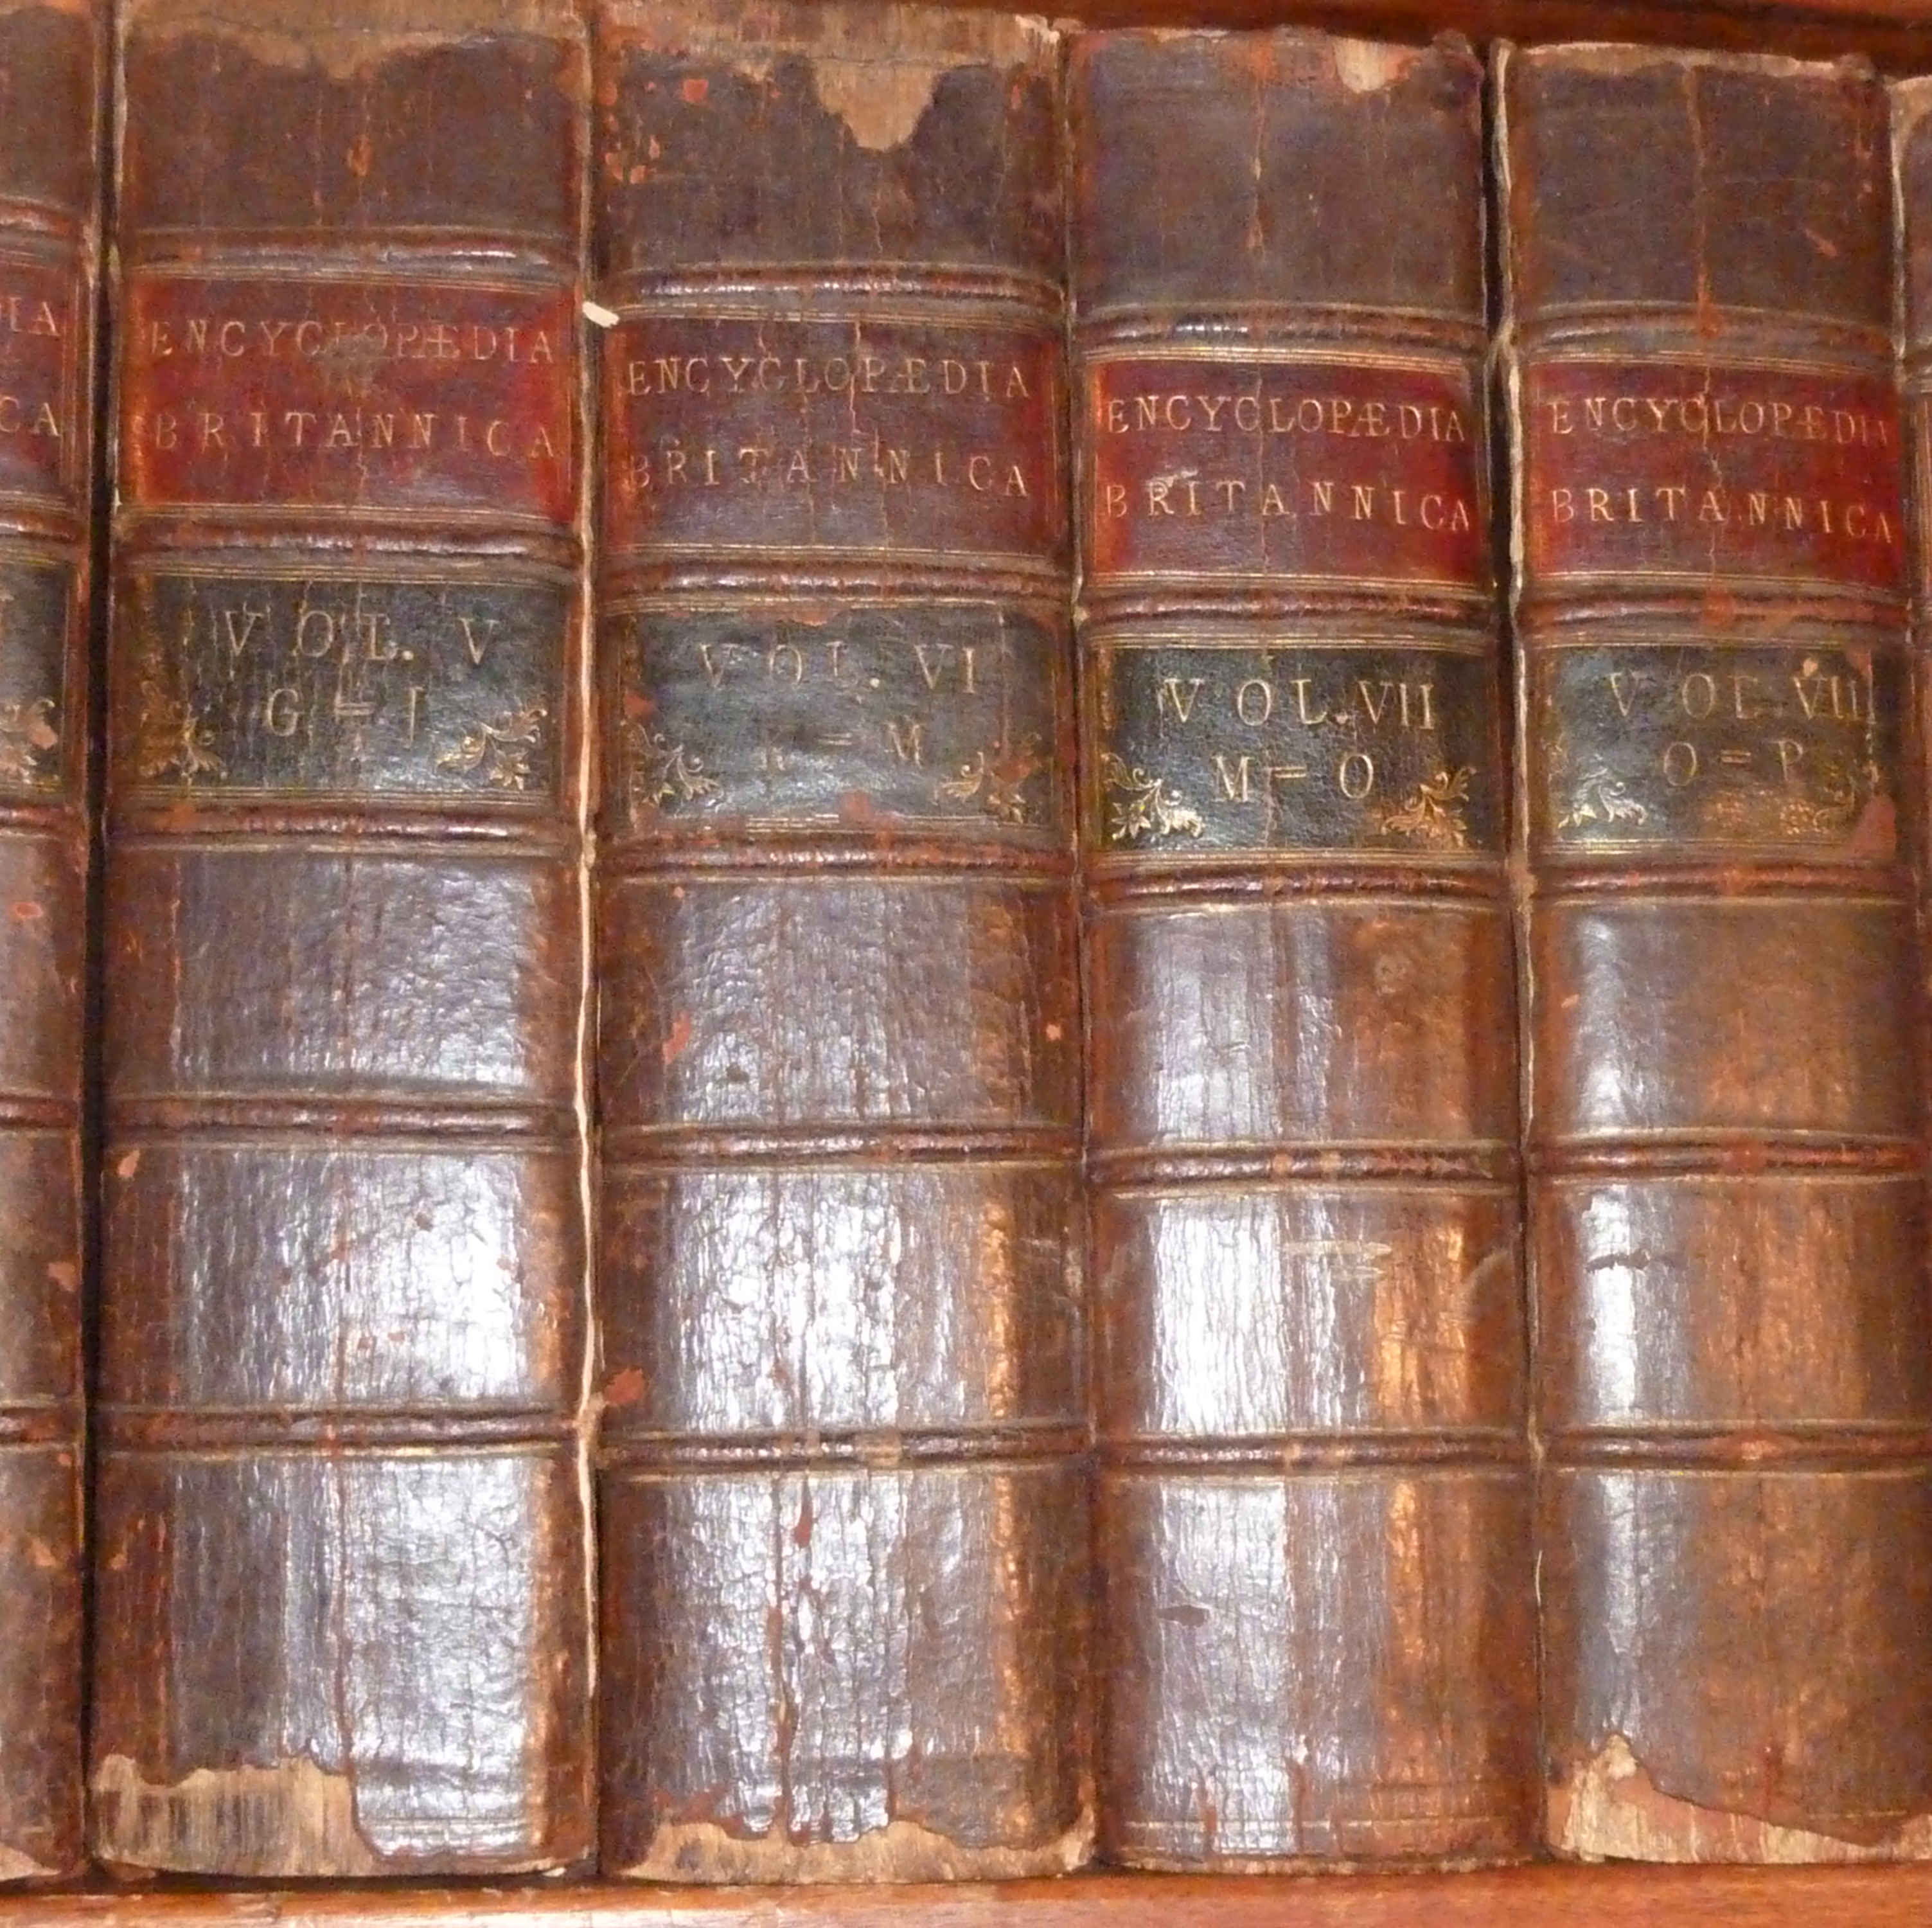 Encyclopedia Britannica First 1st Second 2nd Third 3rd Fourth 4th ...